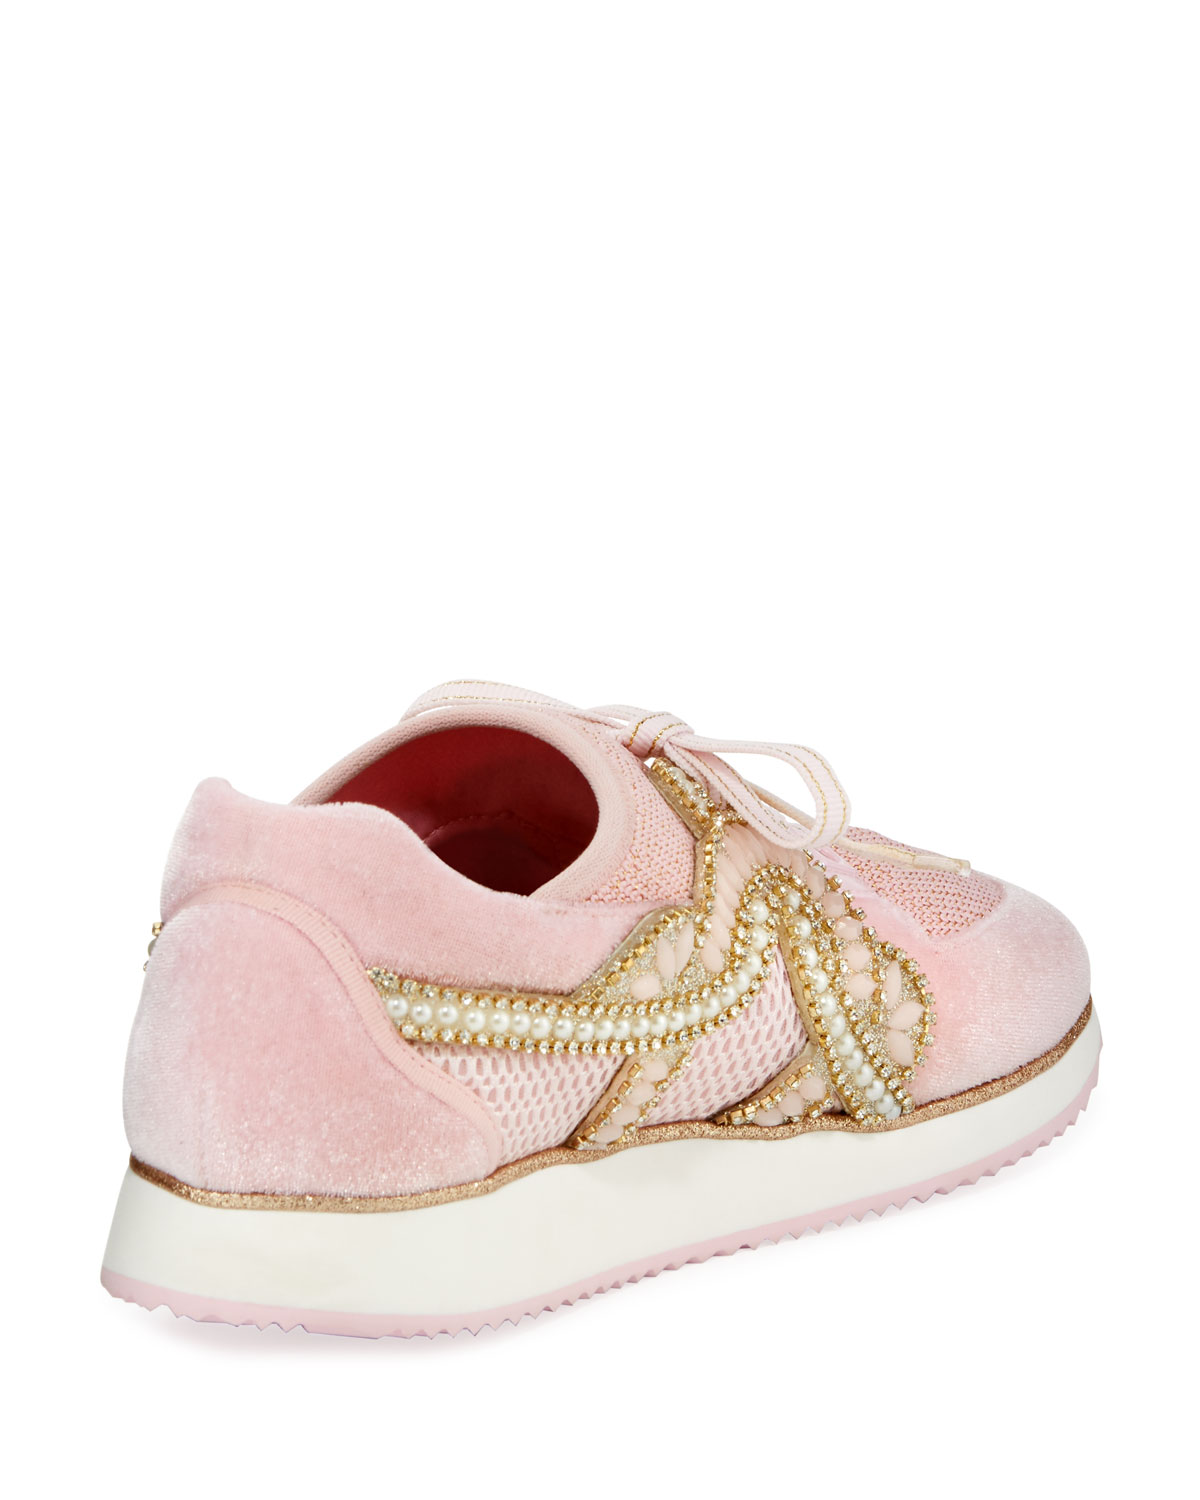 Sophia Webster Royalty Embellished Lace-Up Trainer Sneakers